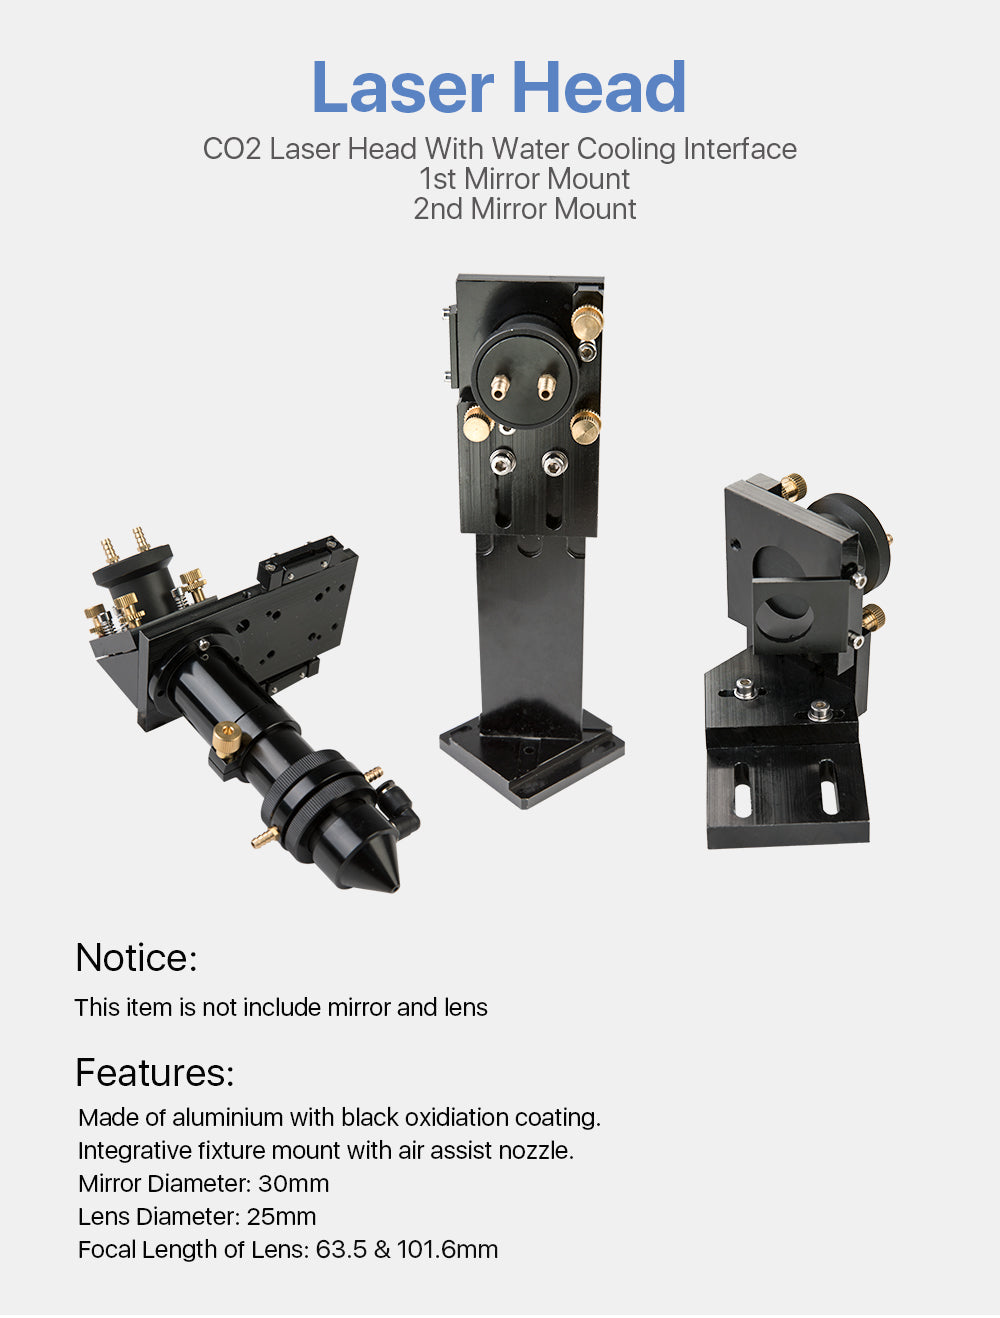 CO2 Laser Head /Mirror Mount / Set with water cooling interface